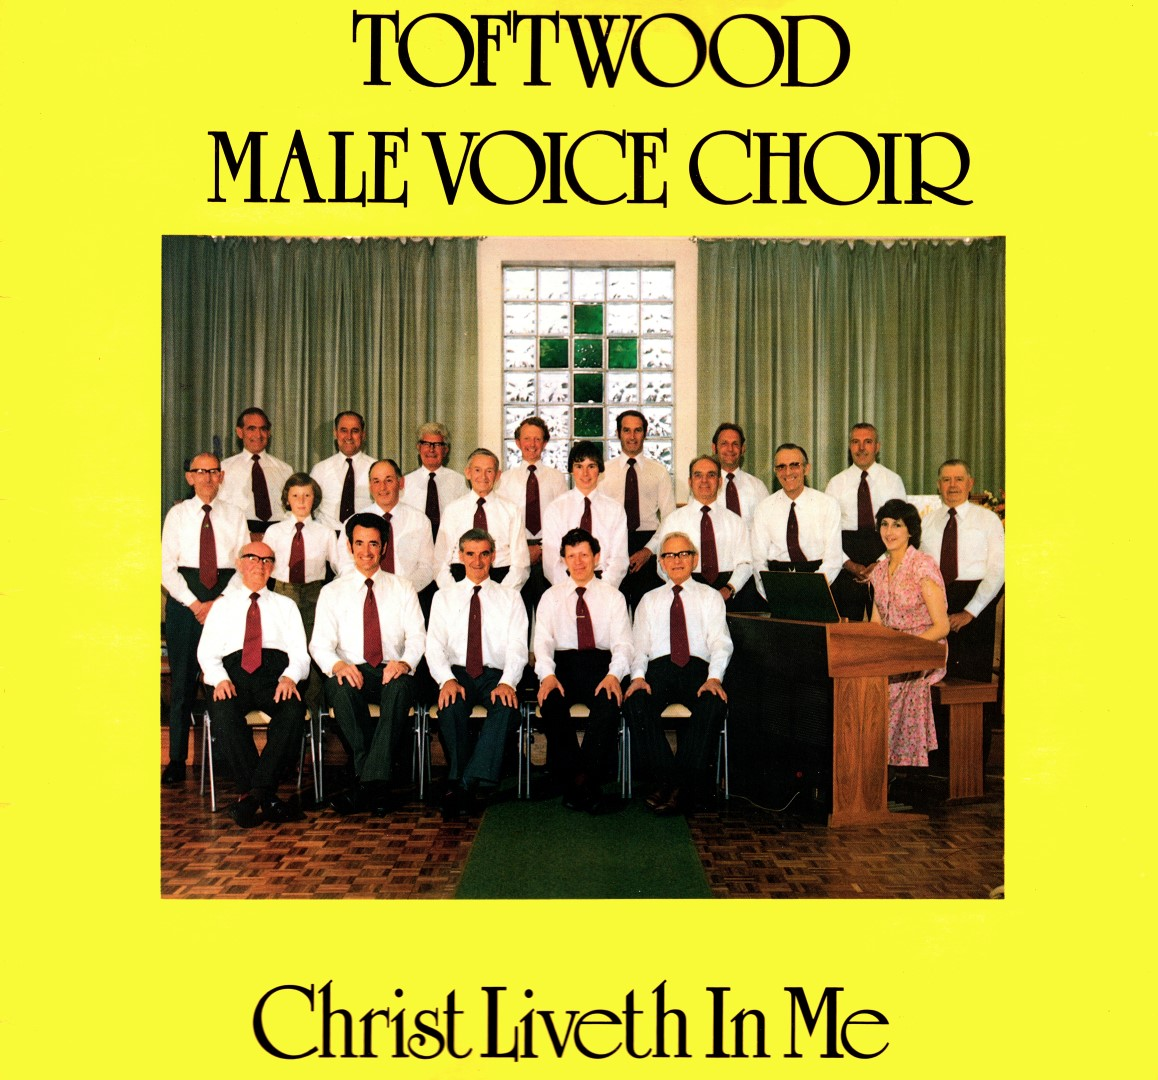 Toftwood Male Voice Choir 1980